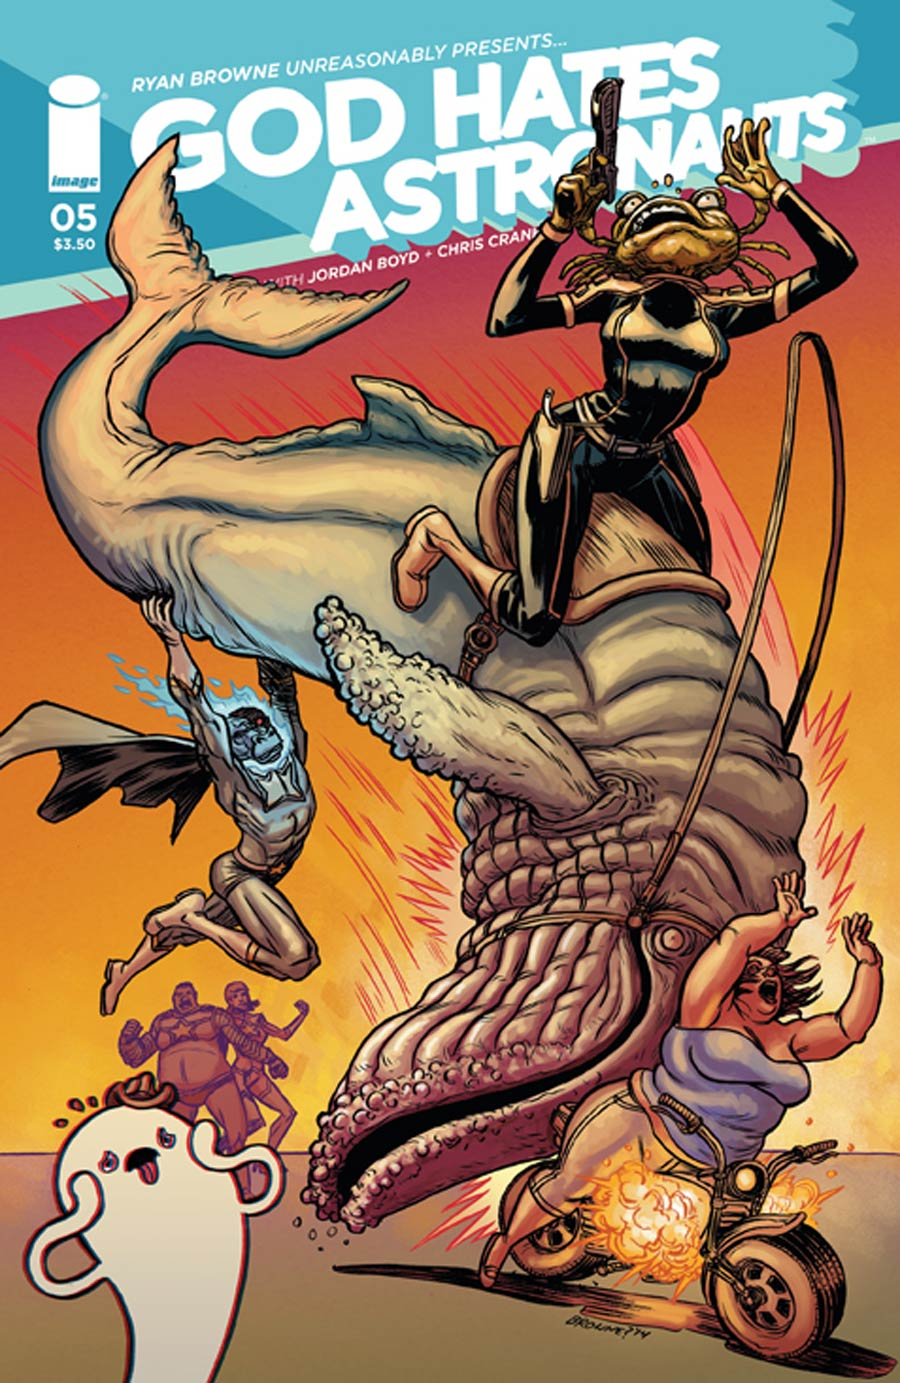 God Hates Astronauts #5 Cover A Ryan Browne